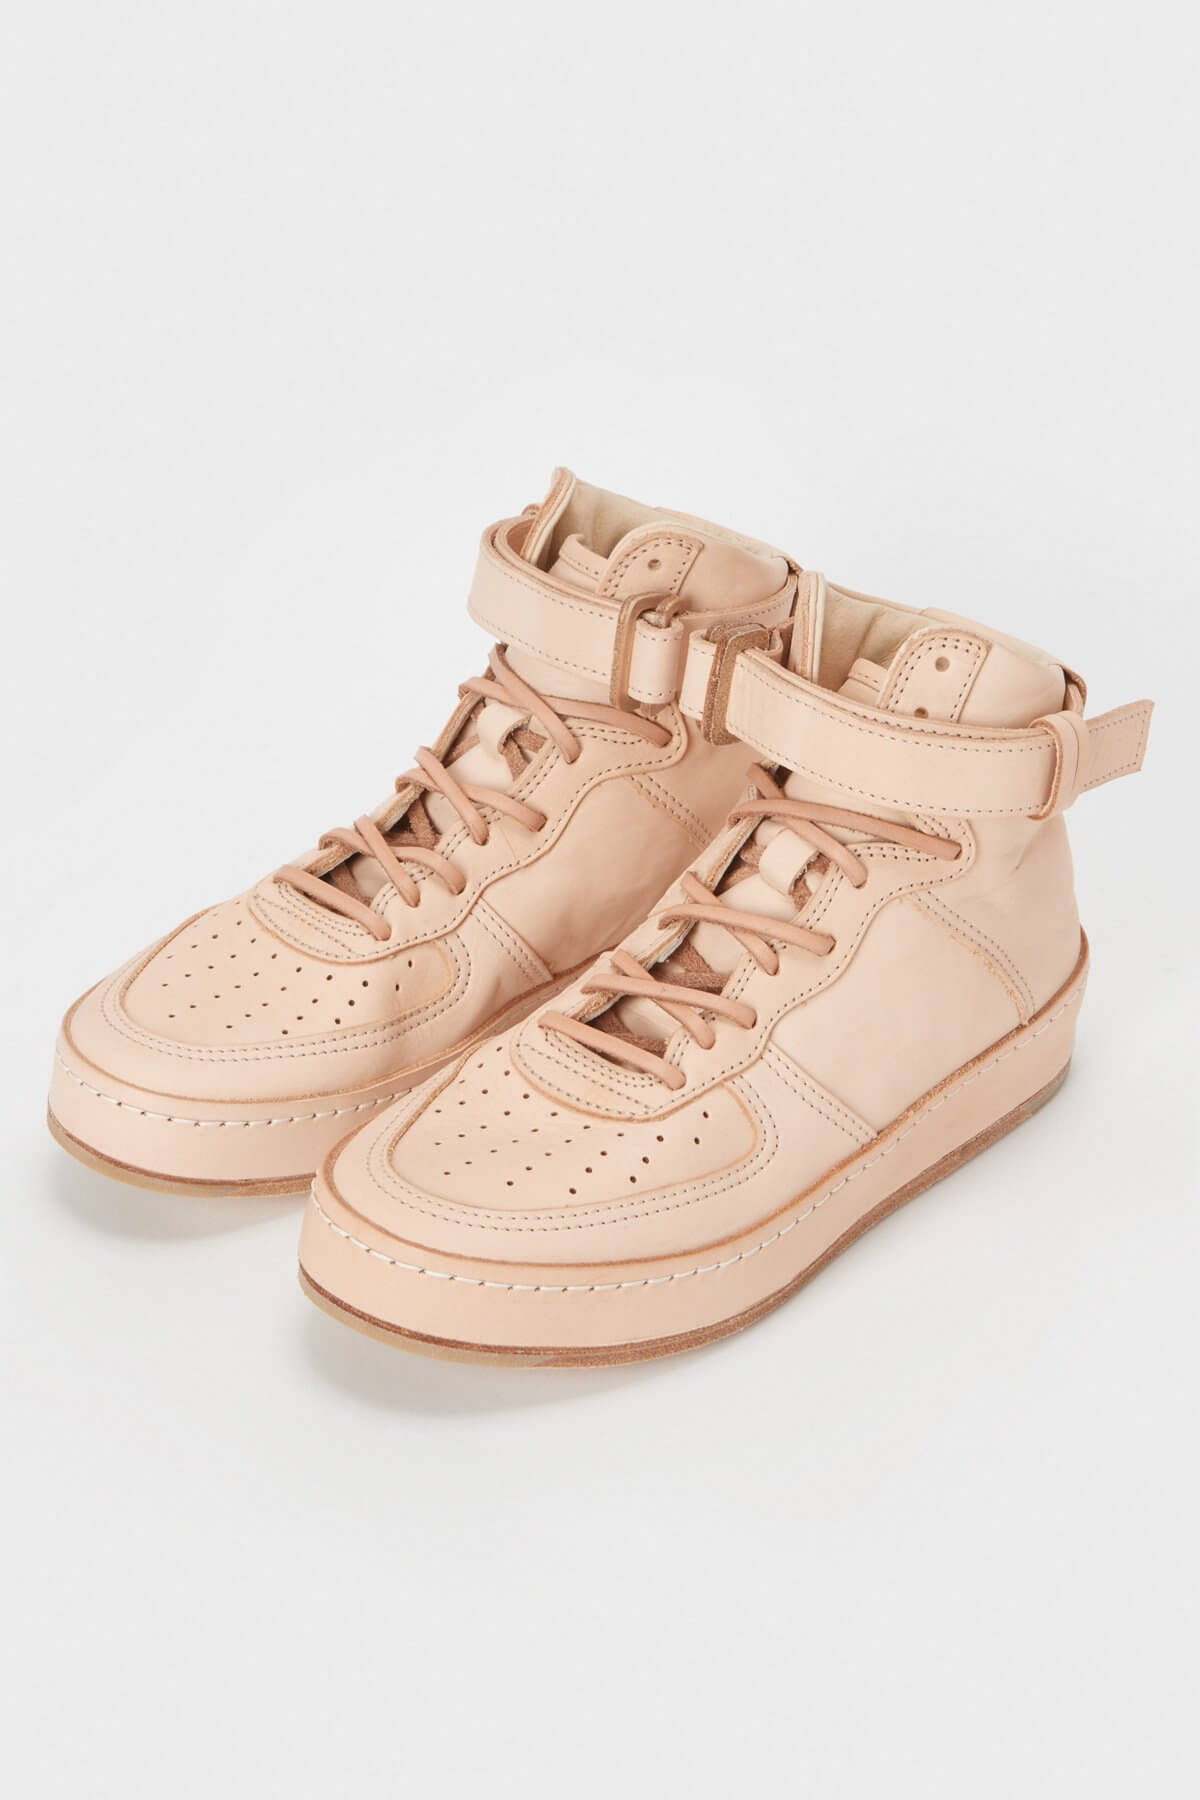 hender scheme's mip 01 nike air force 1s